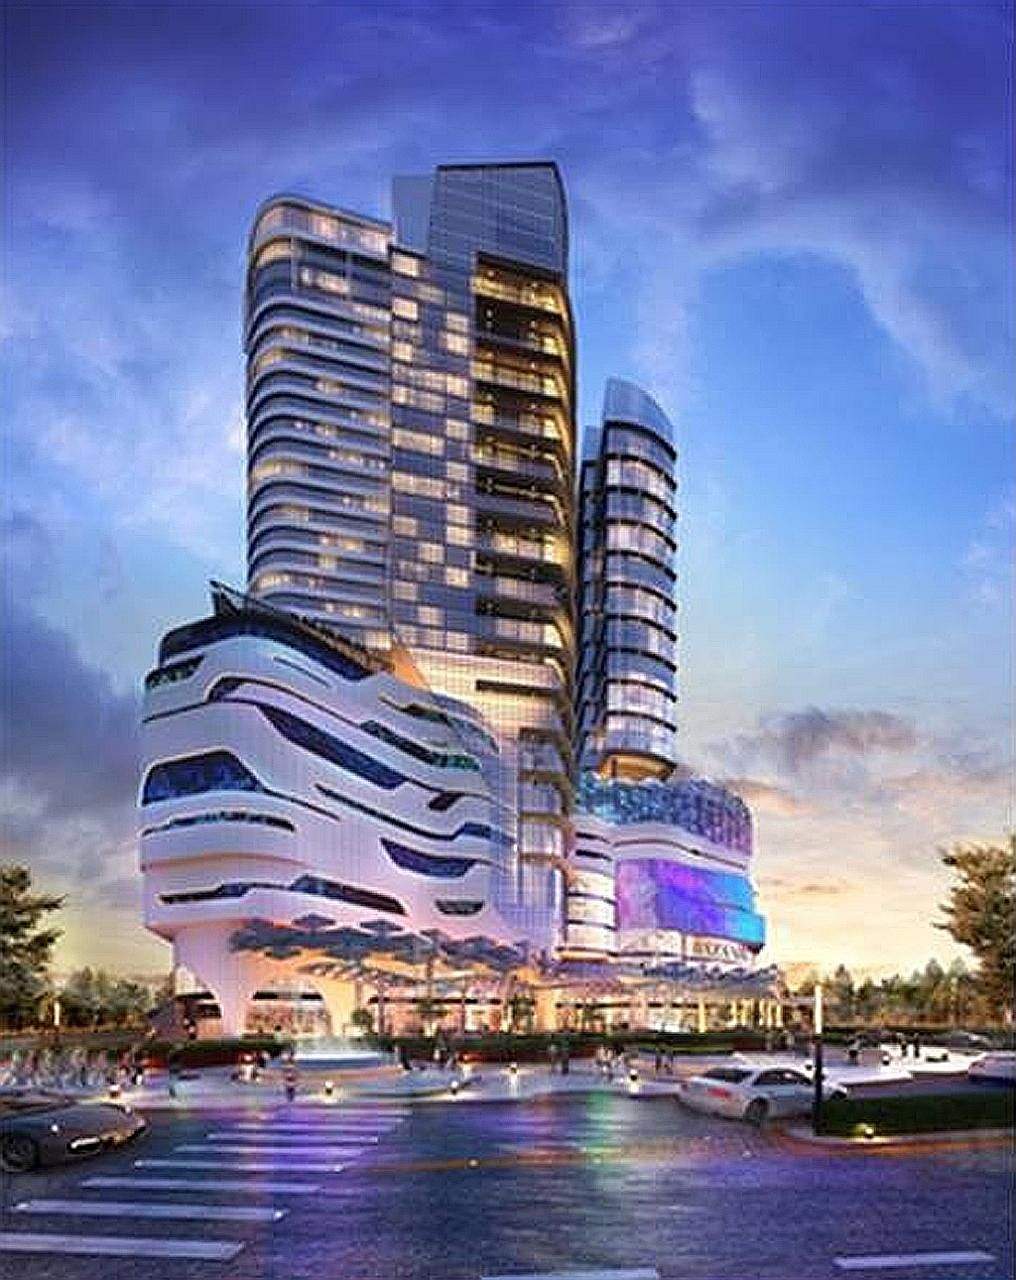 Capital City chief executive Siow Chien Fu is bullish about prospects of the mixed-use project in Johor Baru his company is building, despite perceptions about the real estate situation in Johor Baru.